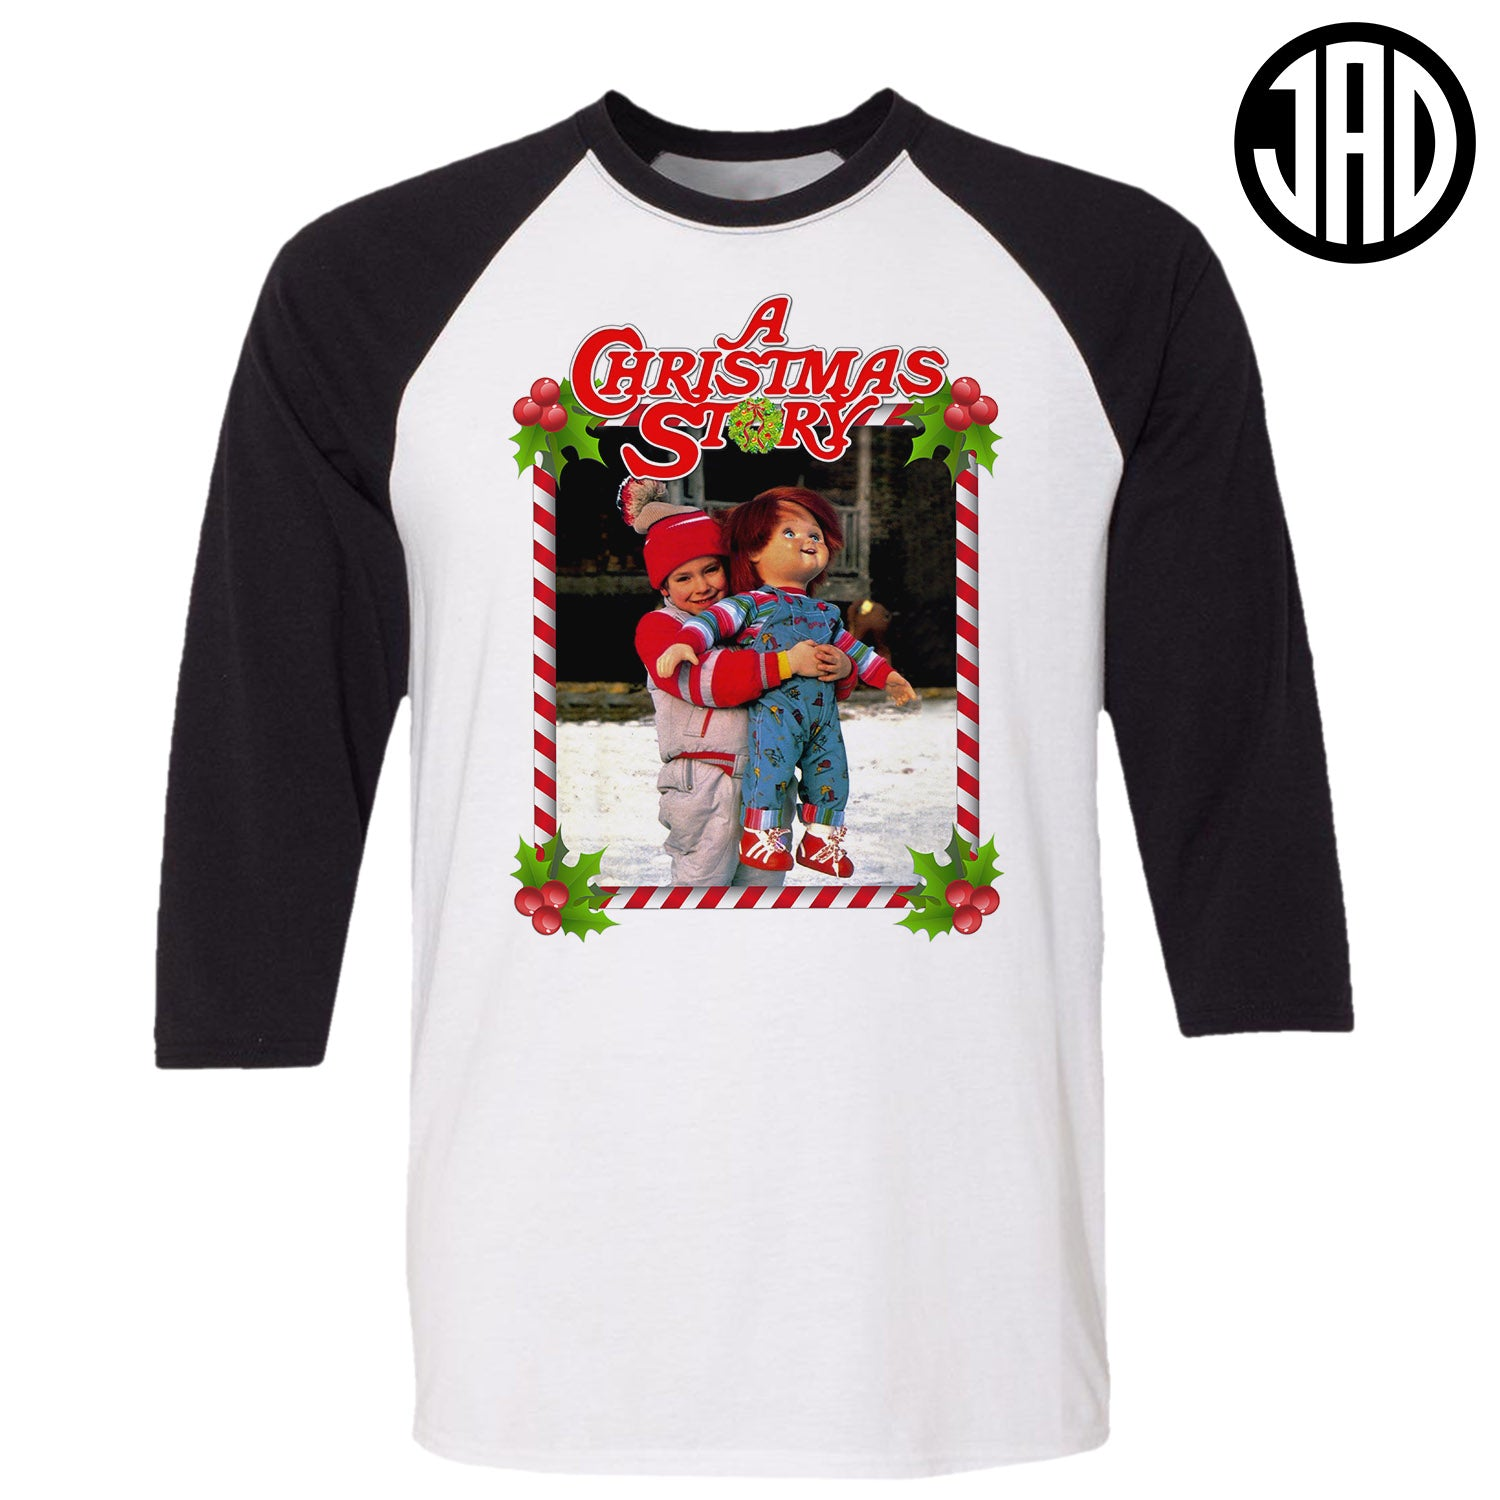 A Christmas Story - Men's (Unisex) Baseball Tee